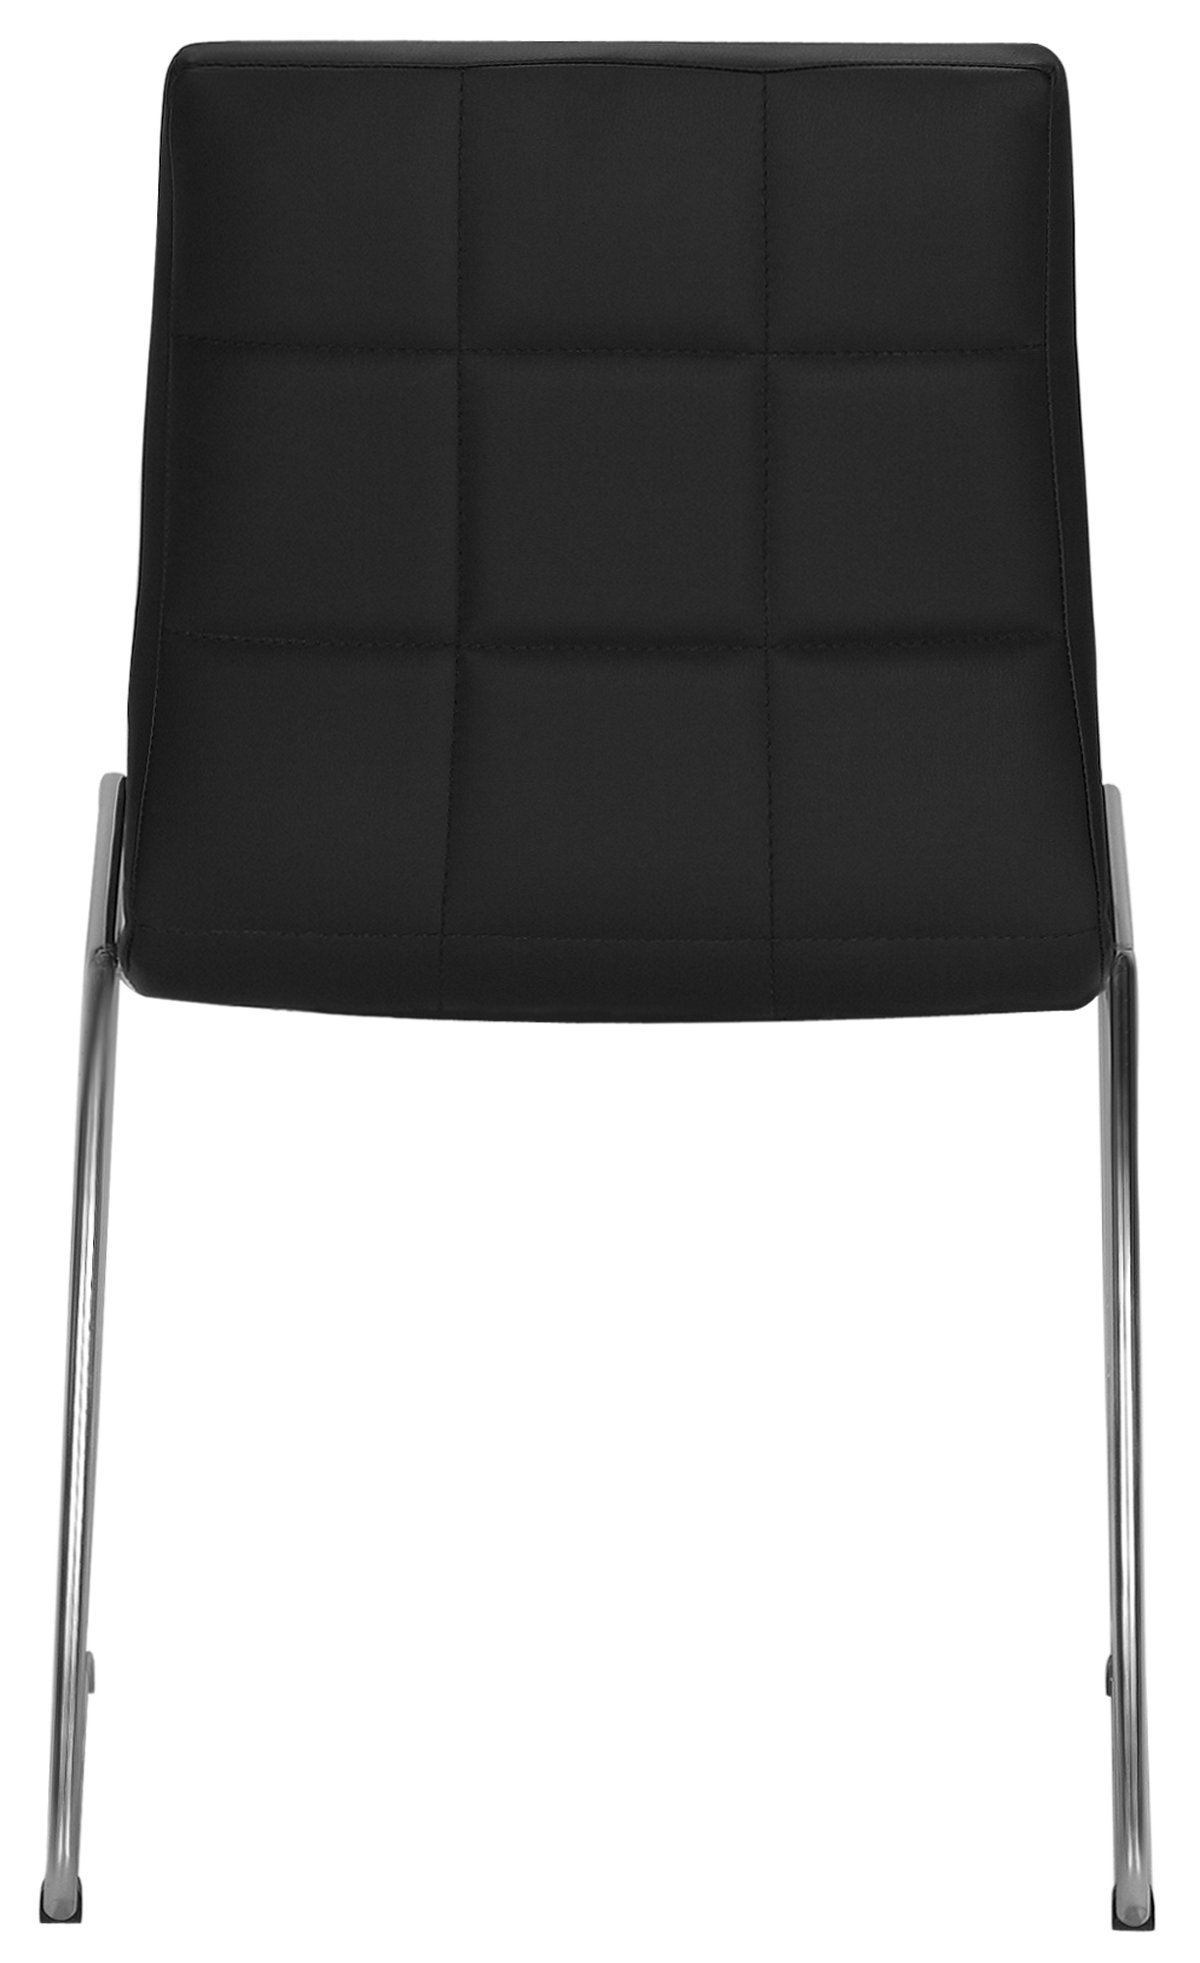 napoli black rect table & 4 chairs